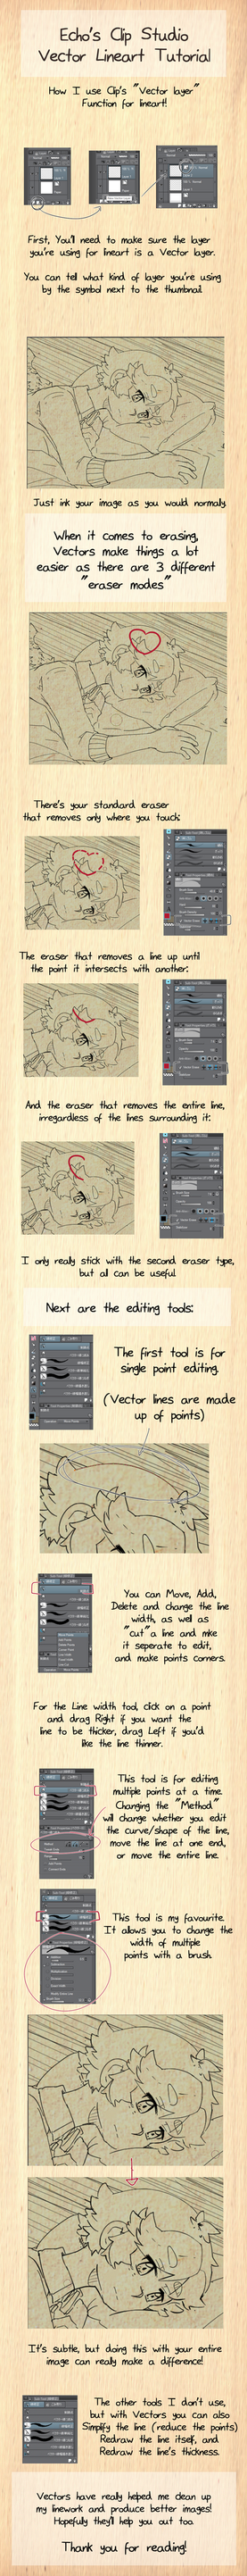 Clip studio vector layer tutorial by Ekkoberry